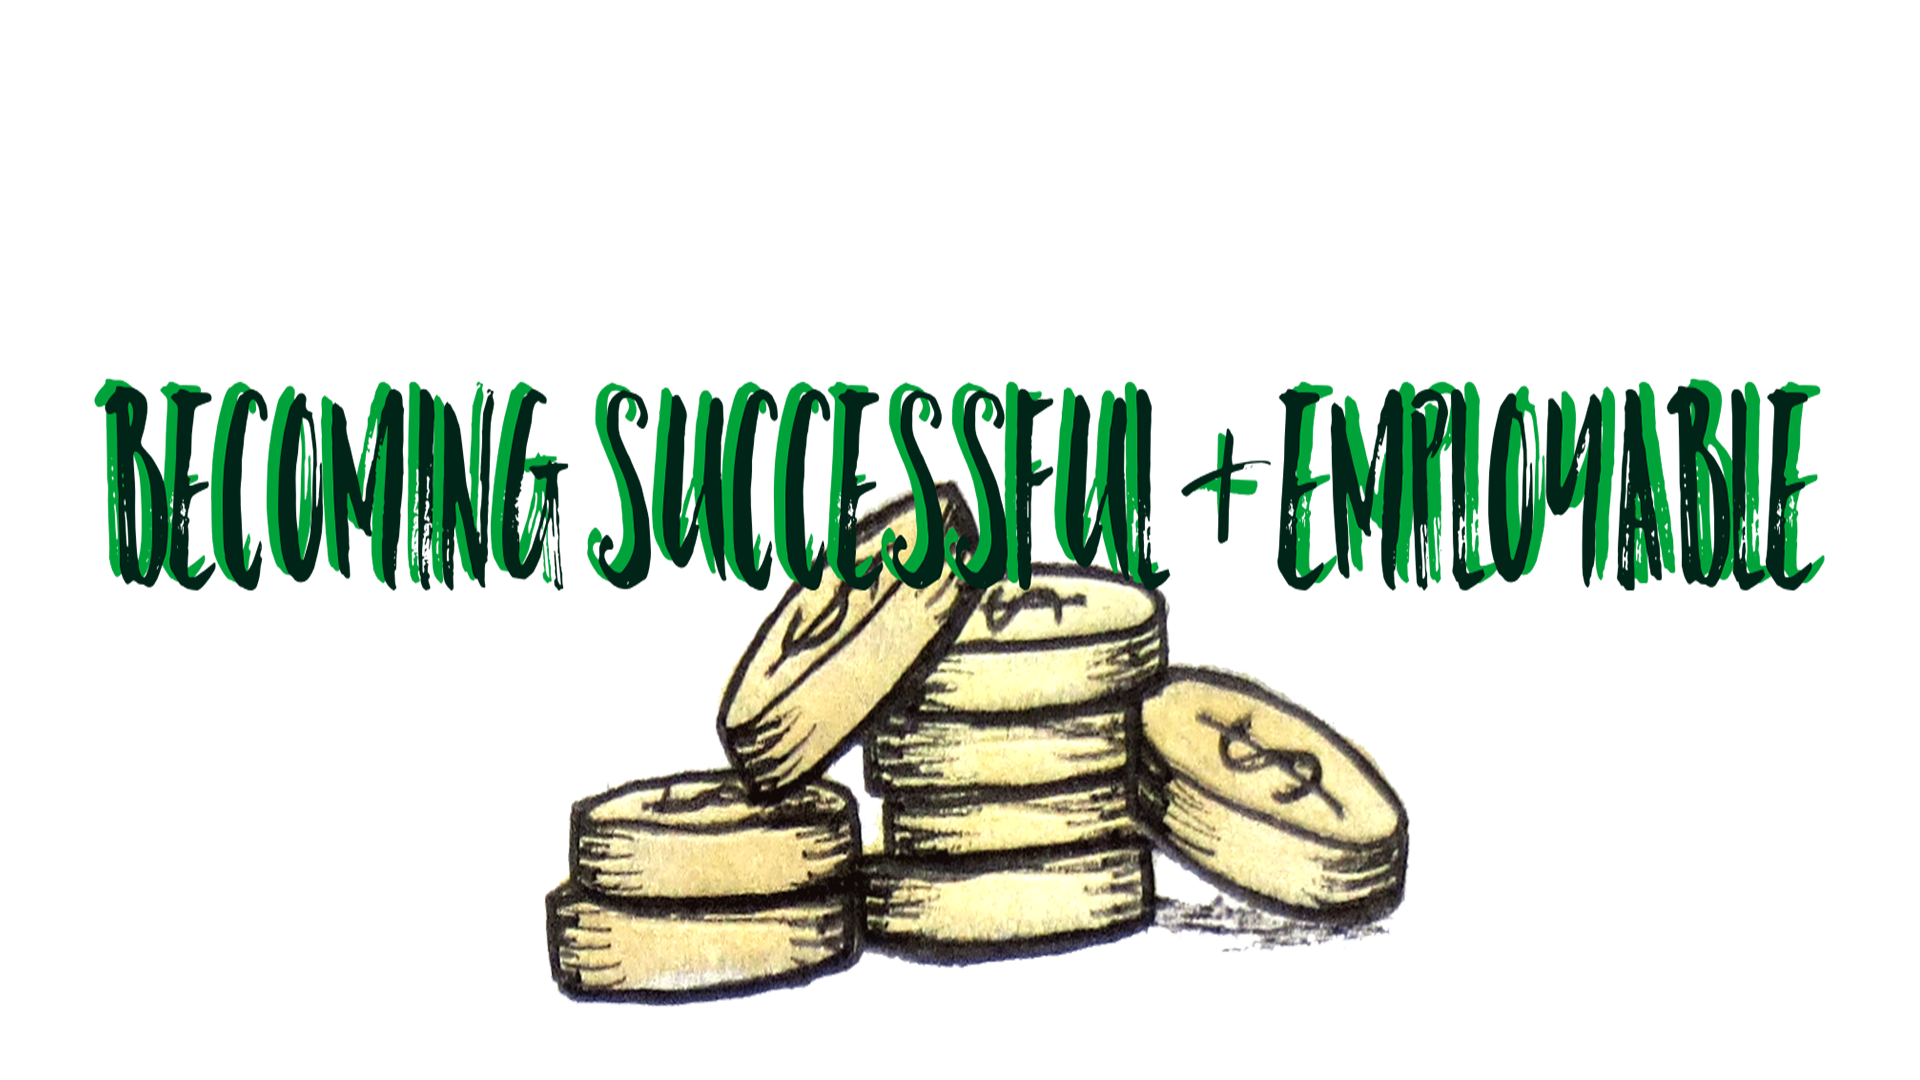 Becoming successful and employable